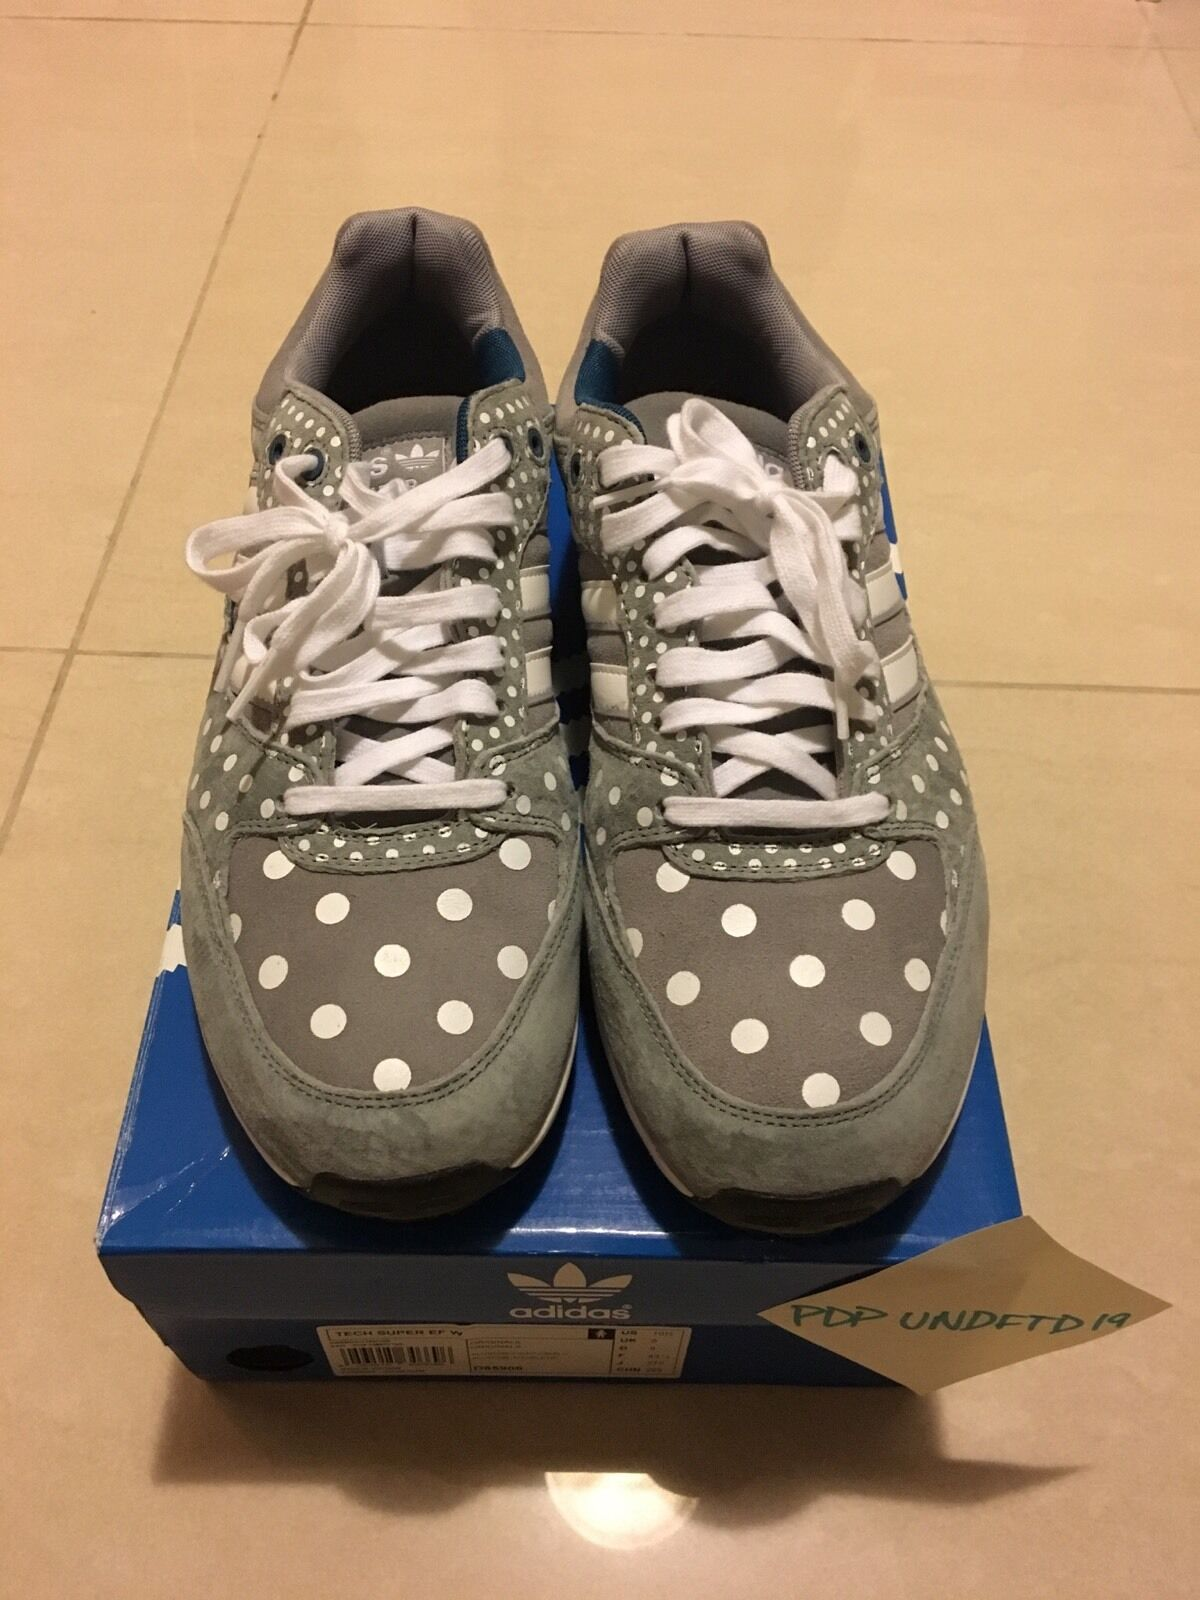 Adidas Tech Super Polka Dot size 10.5W 9.5M